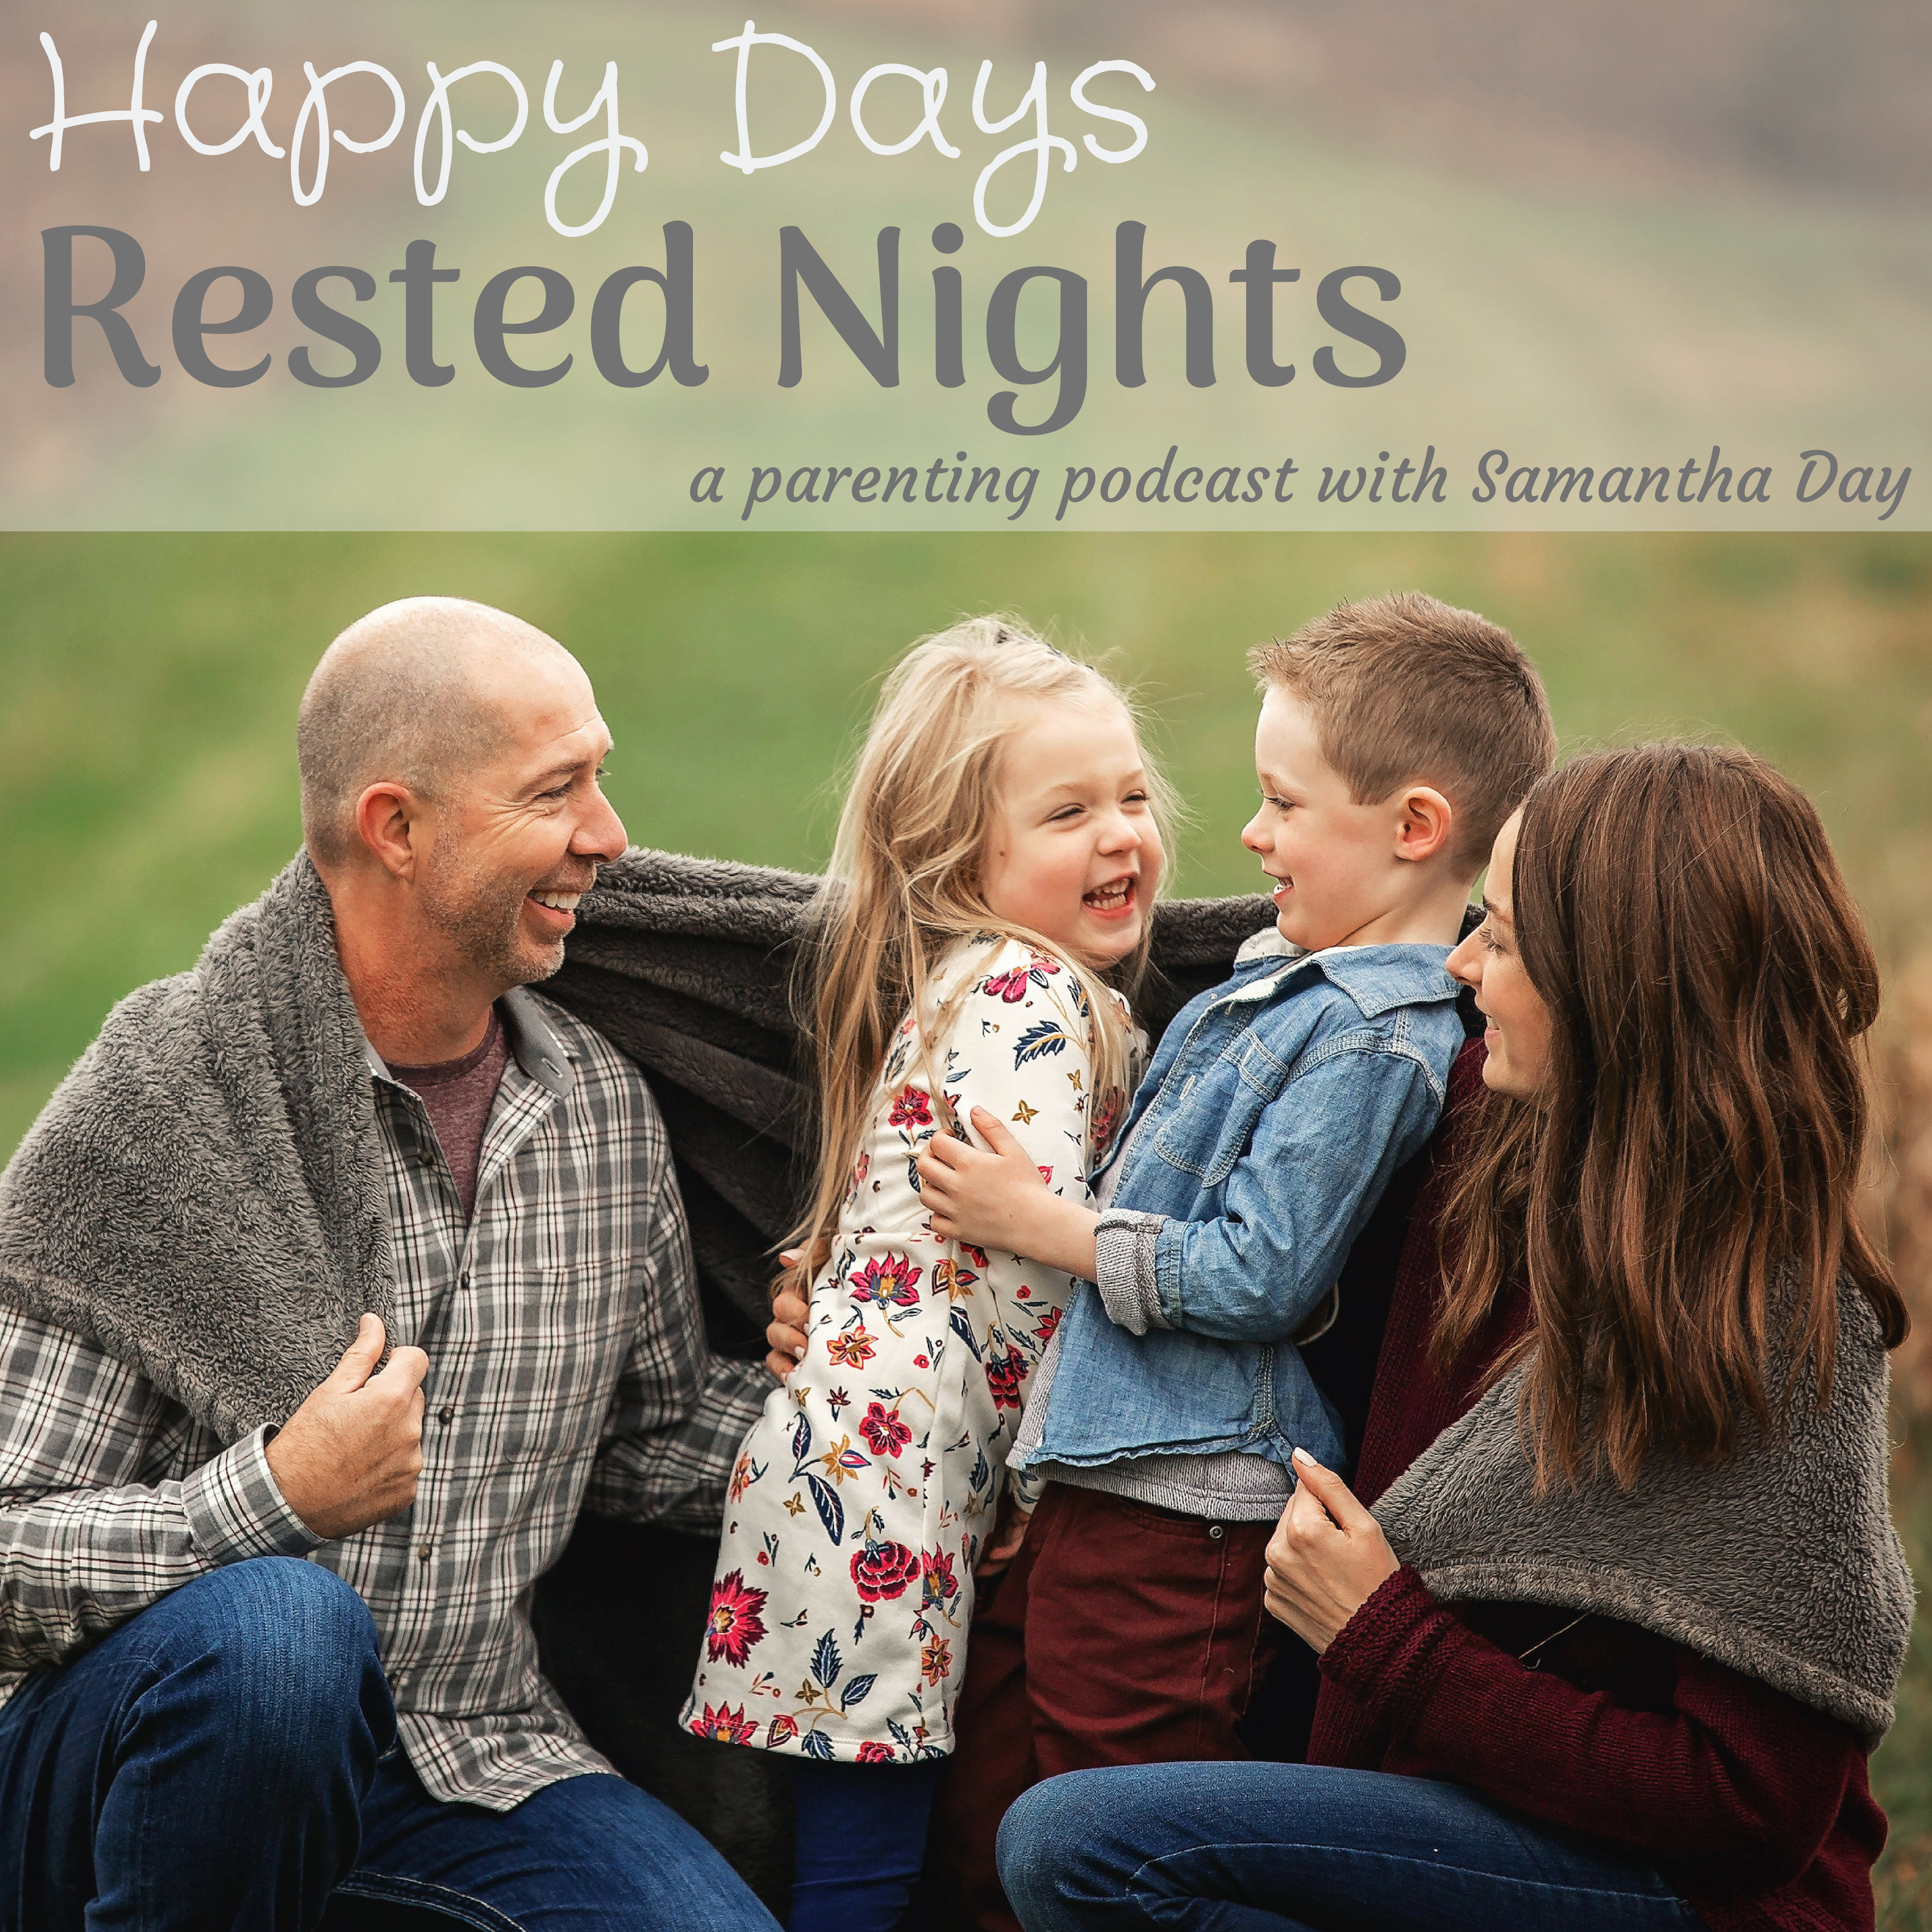 Happy Days Rested Nights show art